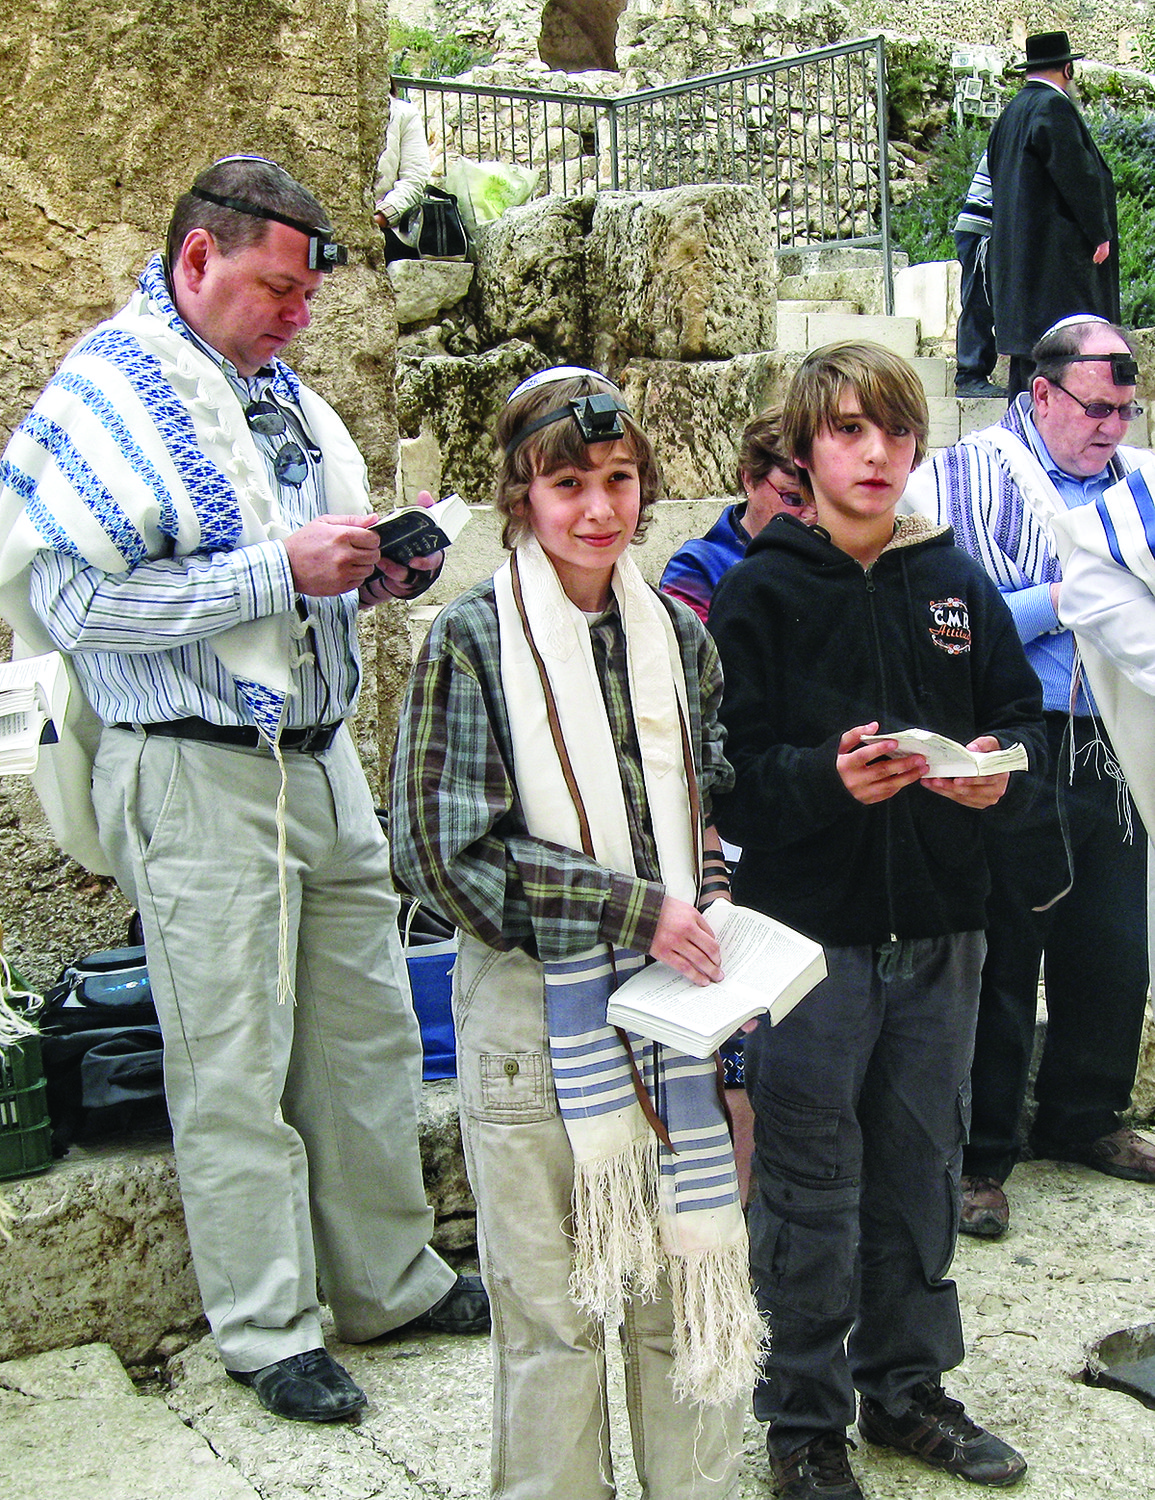 The trips to Israel started with Kevin Sock's Bar Mitzvah 